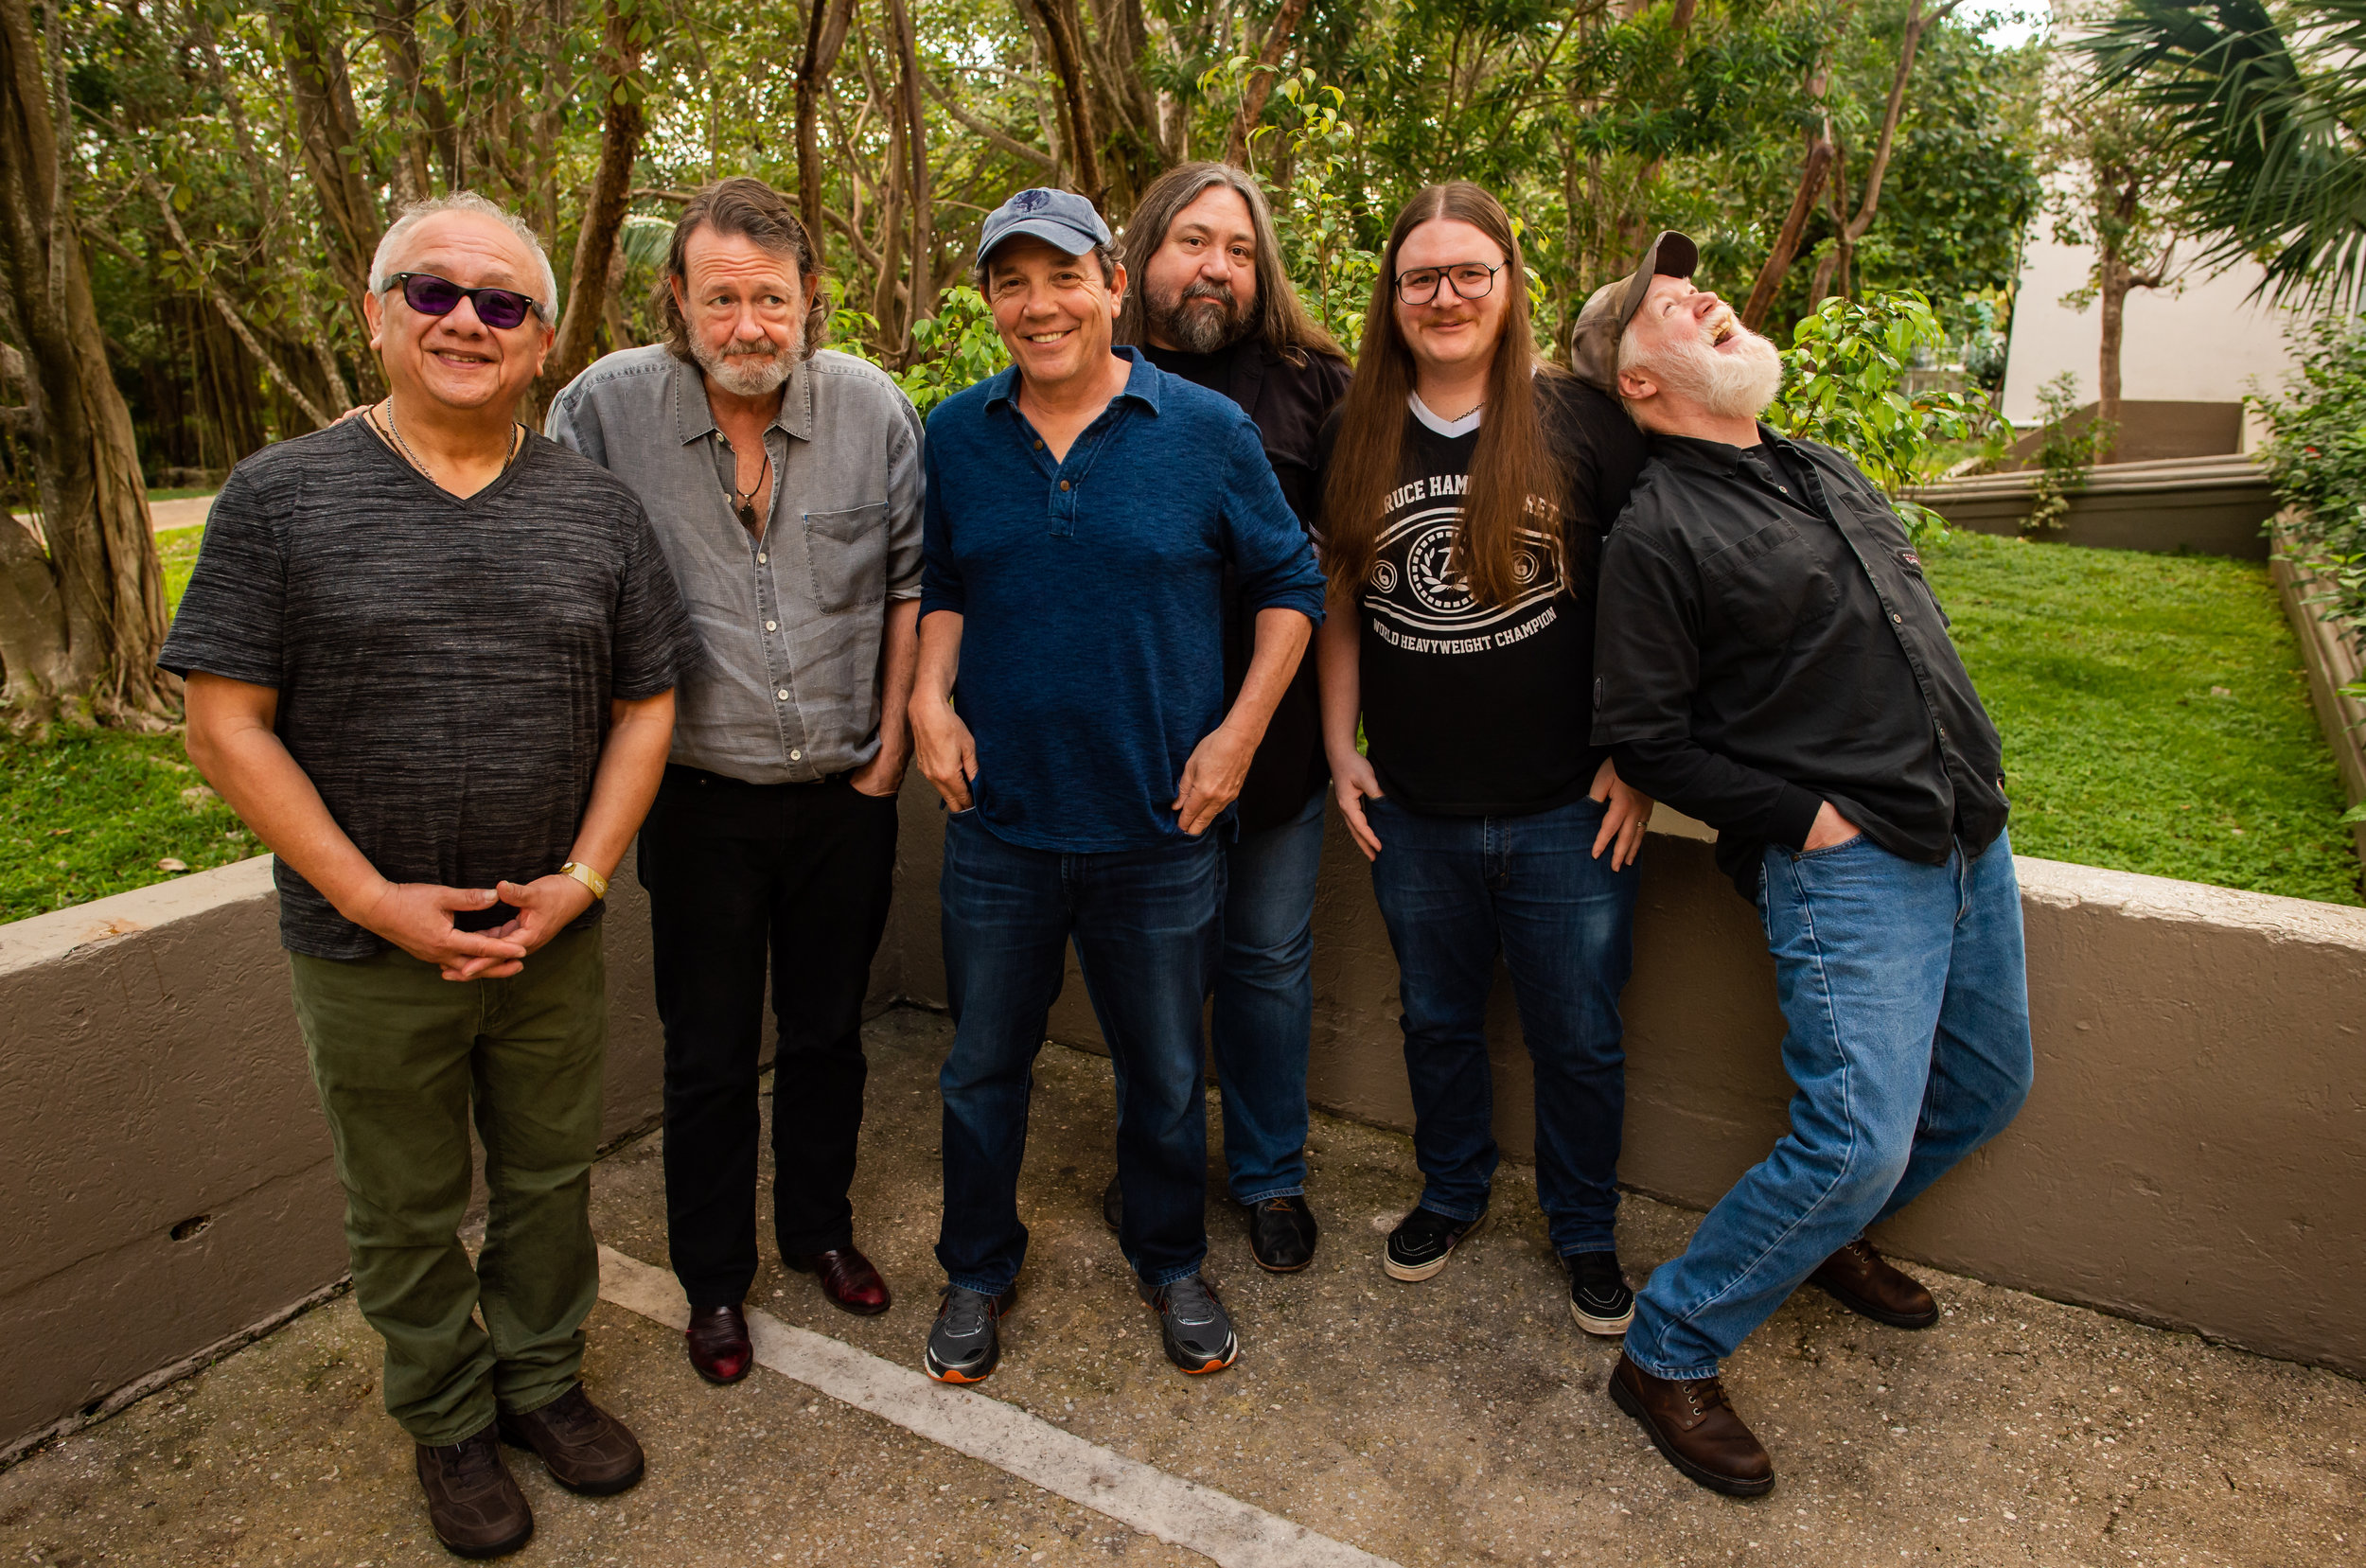 WidespreadPanicPressPhoto2019Color-Credit-Josh-TimmermansNoble-Visions.jpg